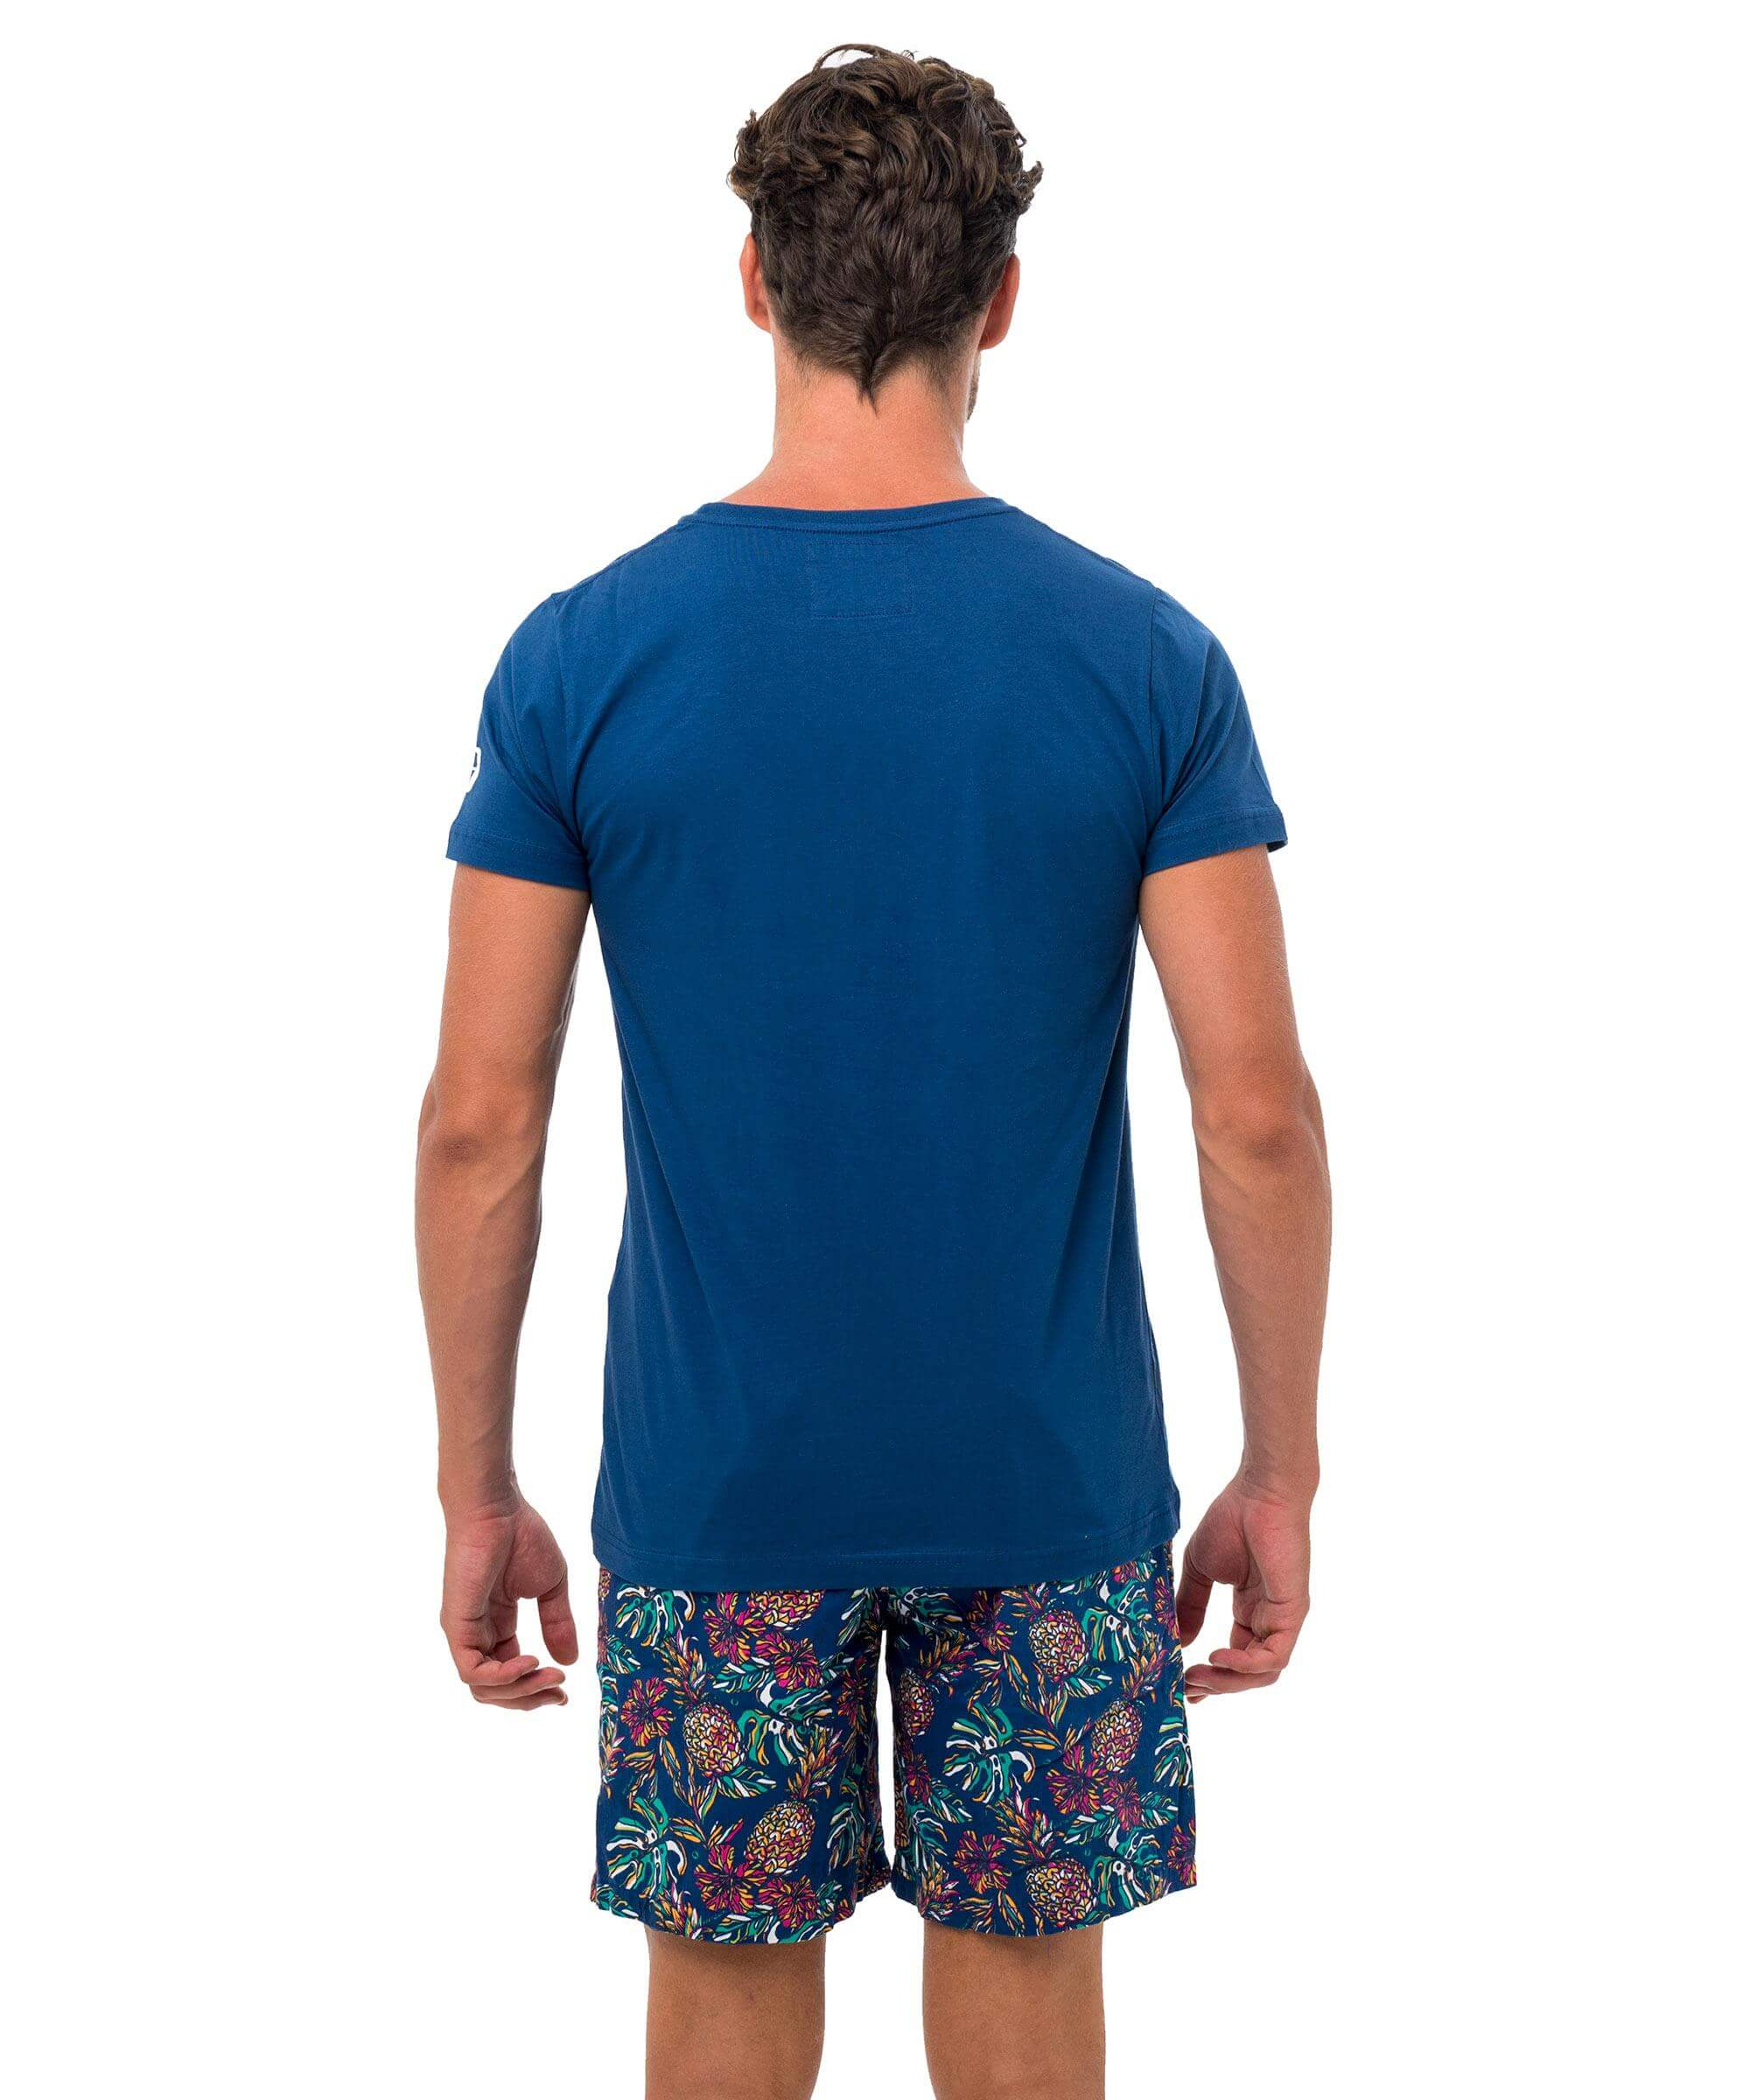 FAUX-KET NAVY DNA COLLECTION SHORT SLEEVES T-SHIRT